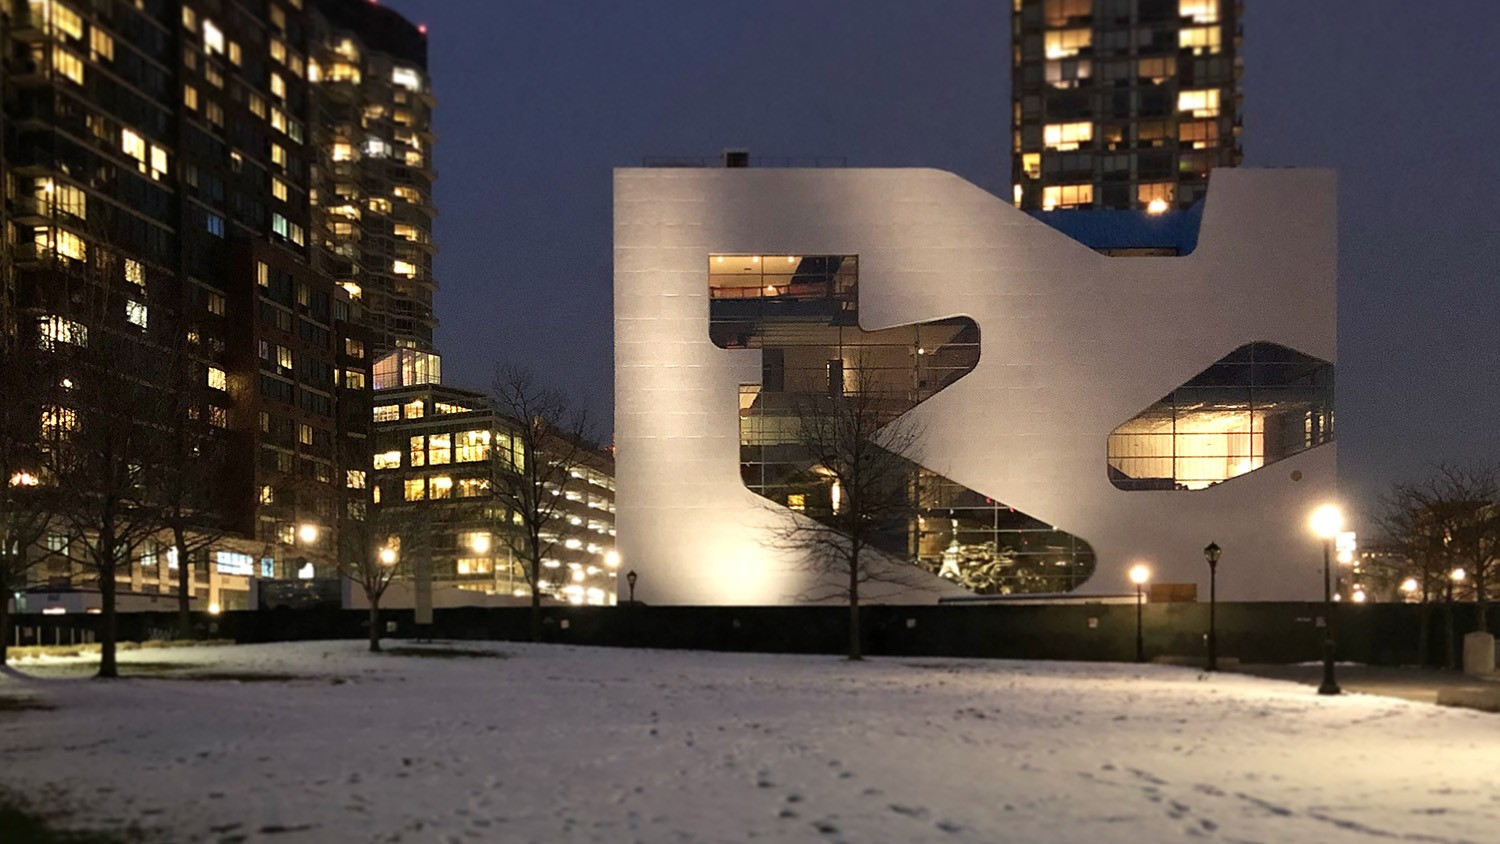 https://s3.us-east-2.amazonaws.com/steven-holl/uploads/projects/project-images/StevenHollArchitects_HPL_Apr02-2018_WH.jpg